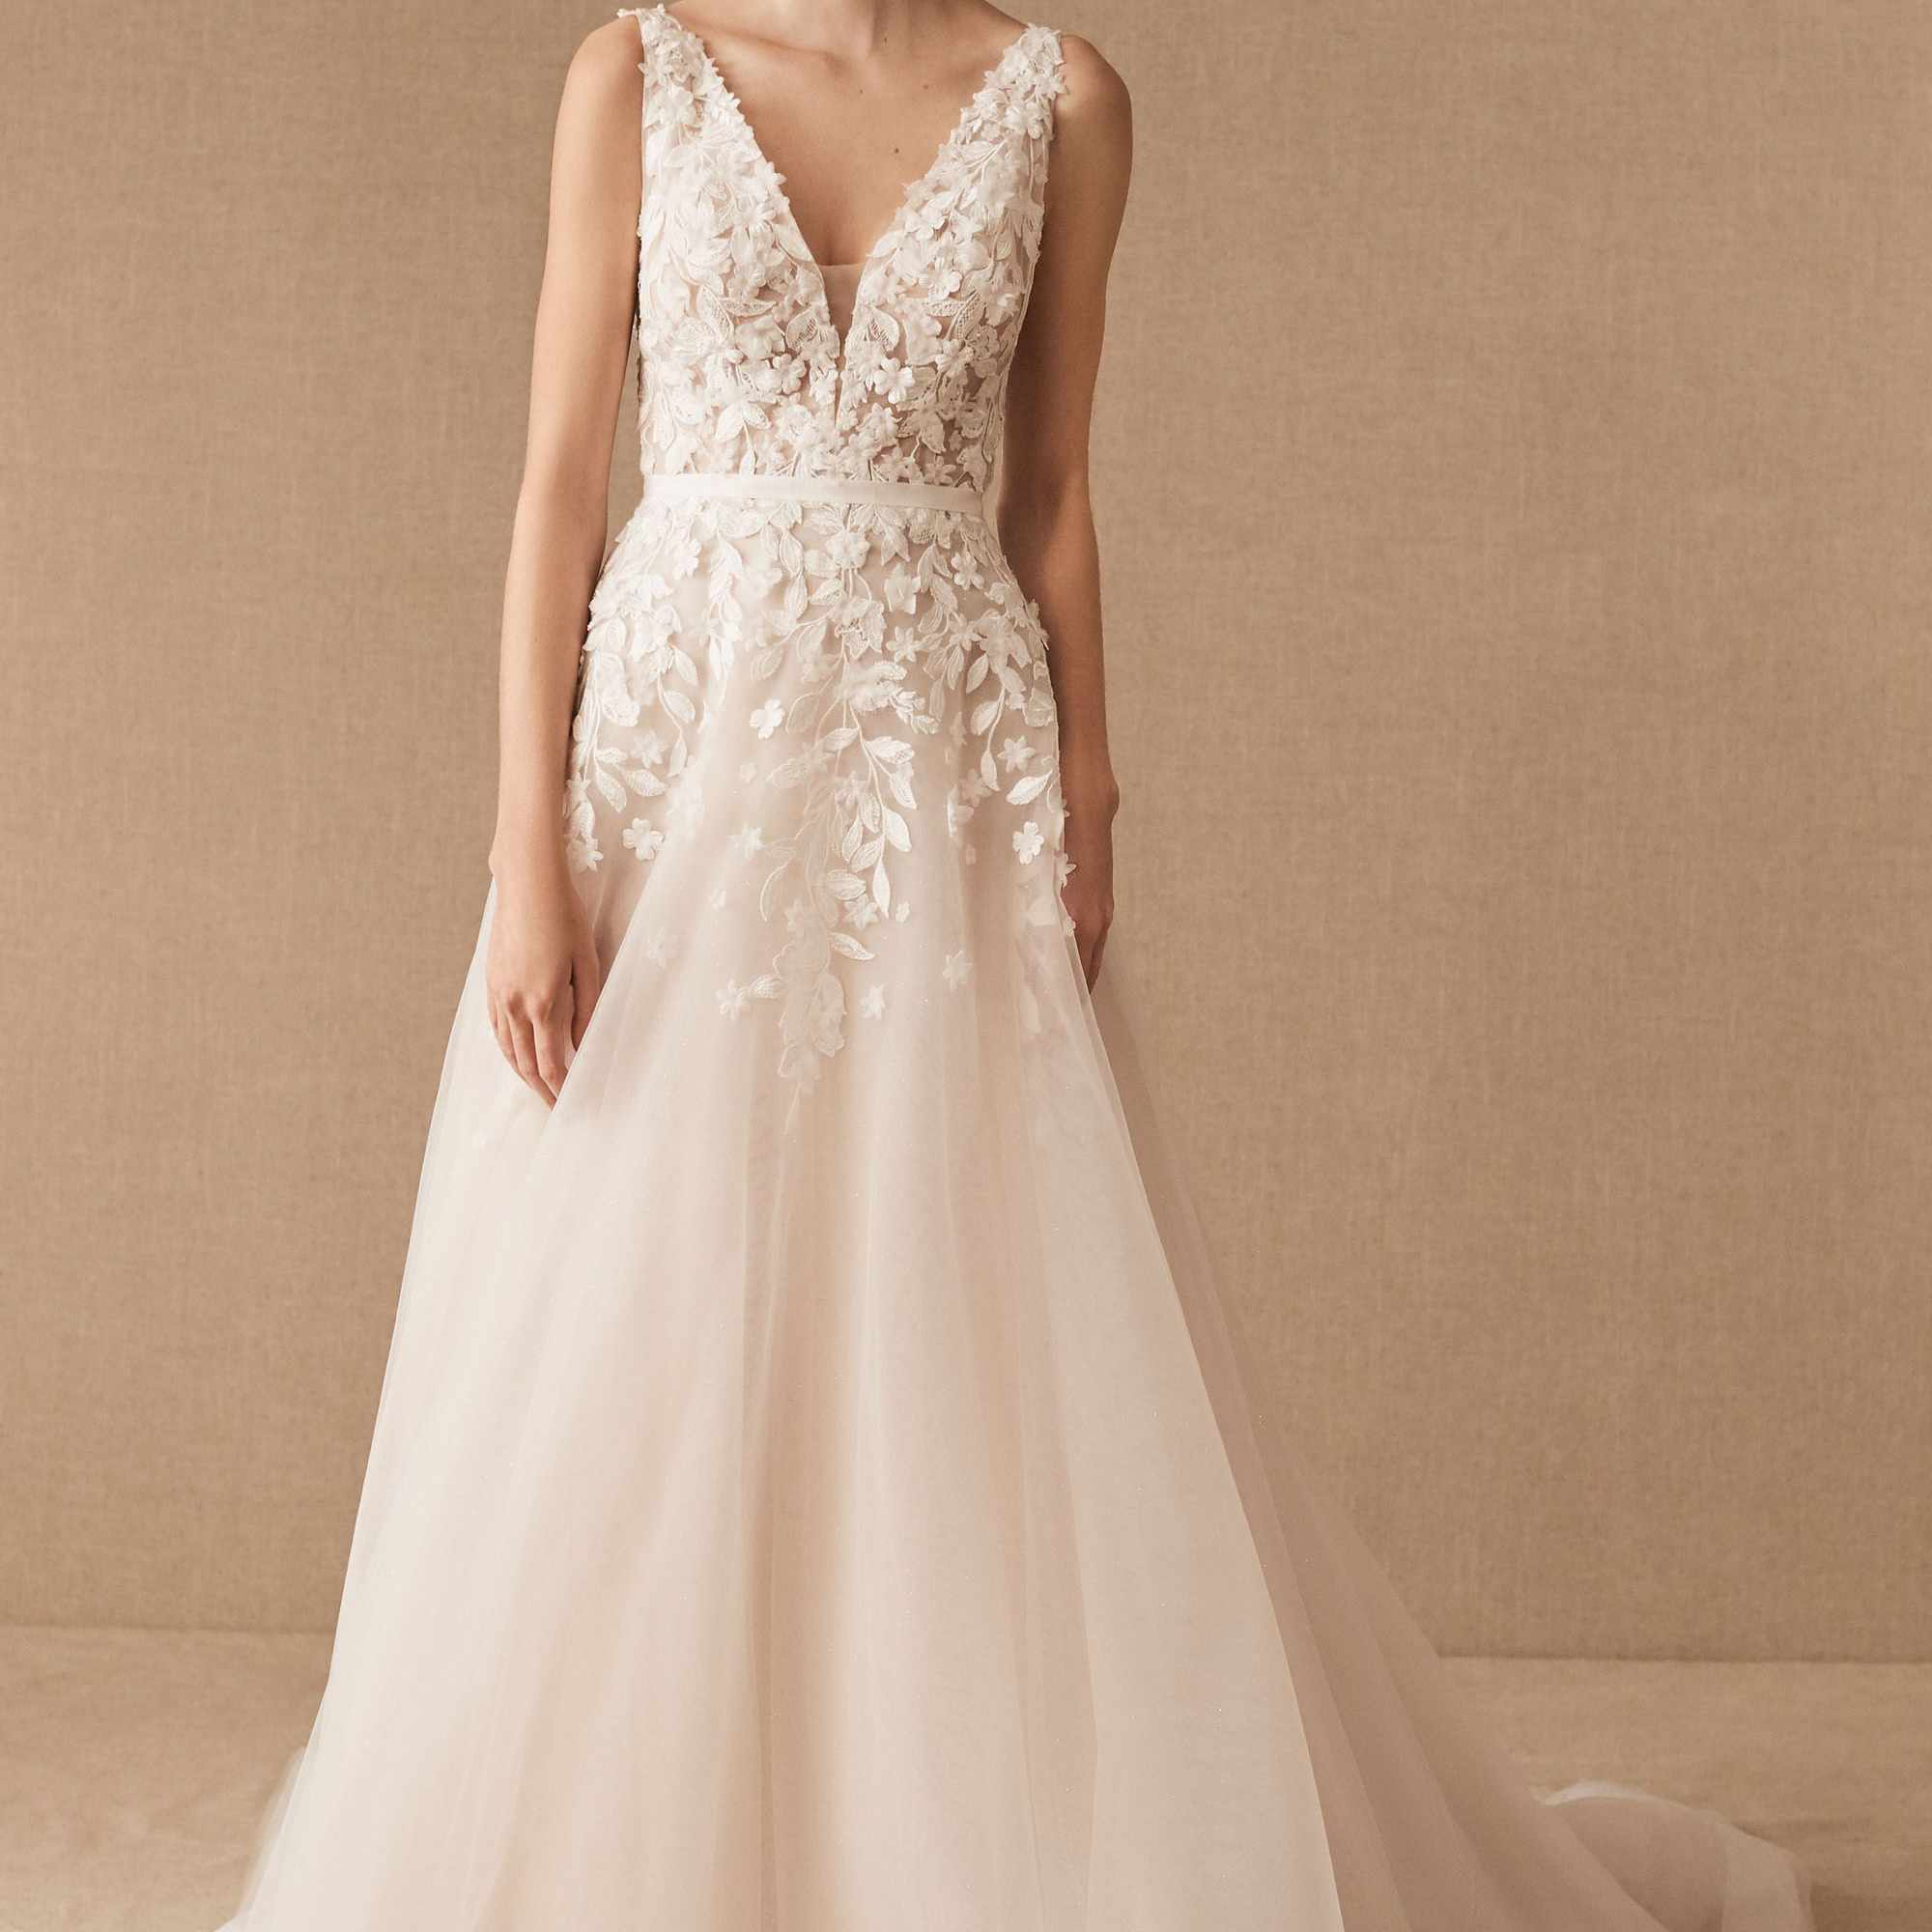 The 20 Best Places To Buy Wedding Dresses Online Of 2020,Blush Pink Ball Gown Wedding Dress